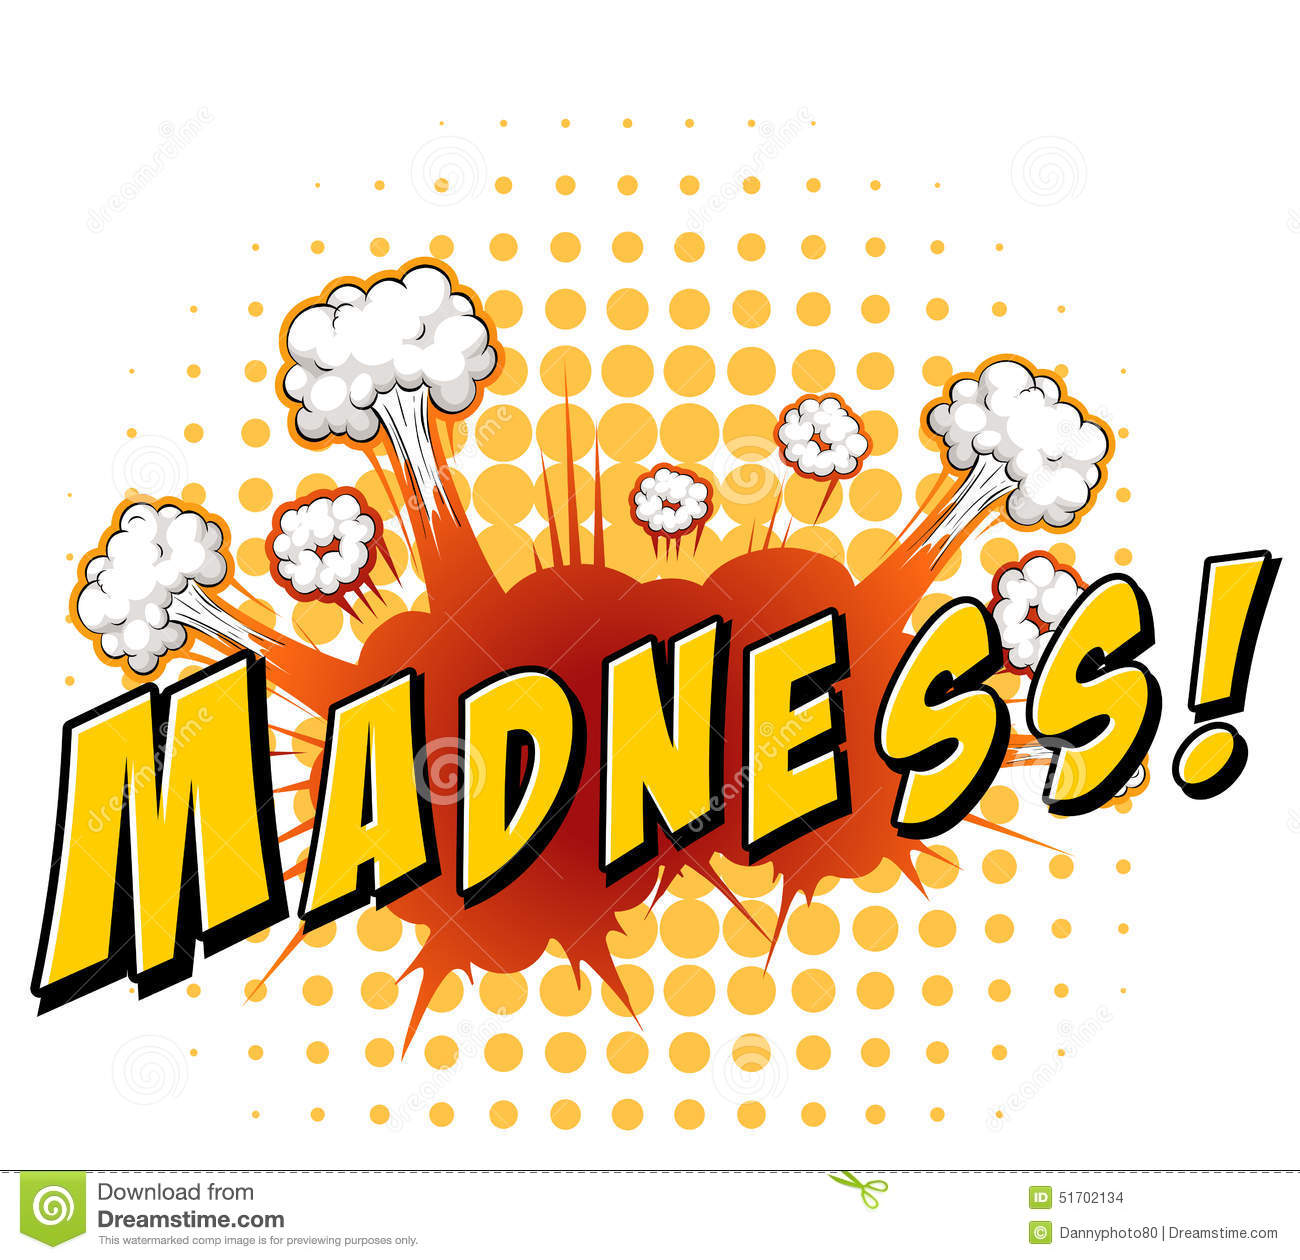 madness vector illustration cartoondealercom 51702134